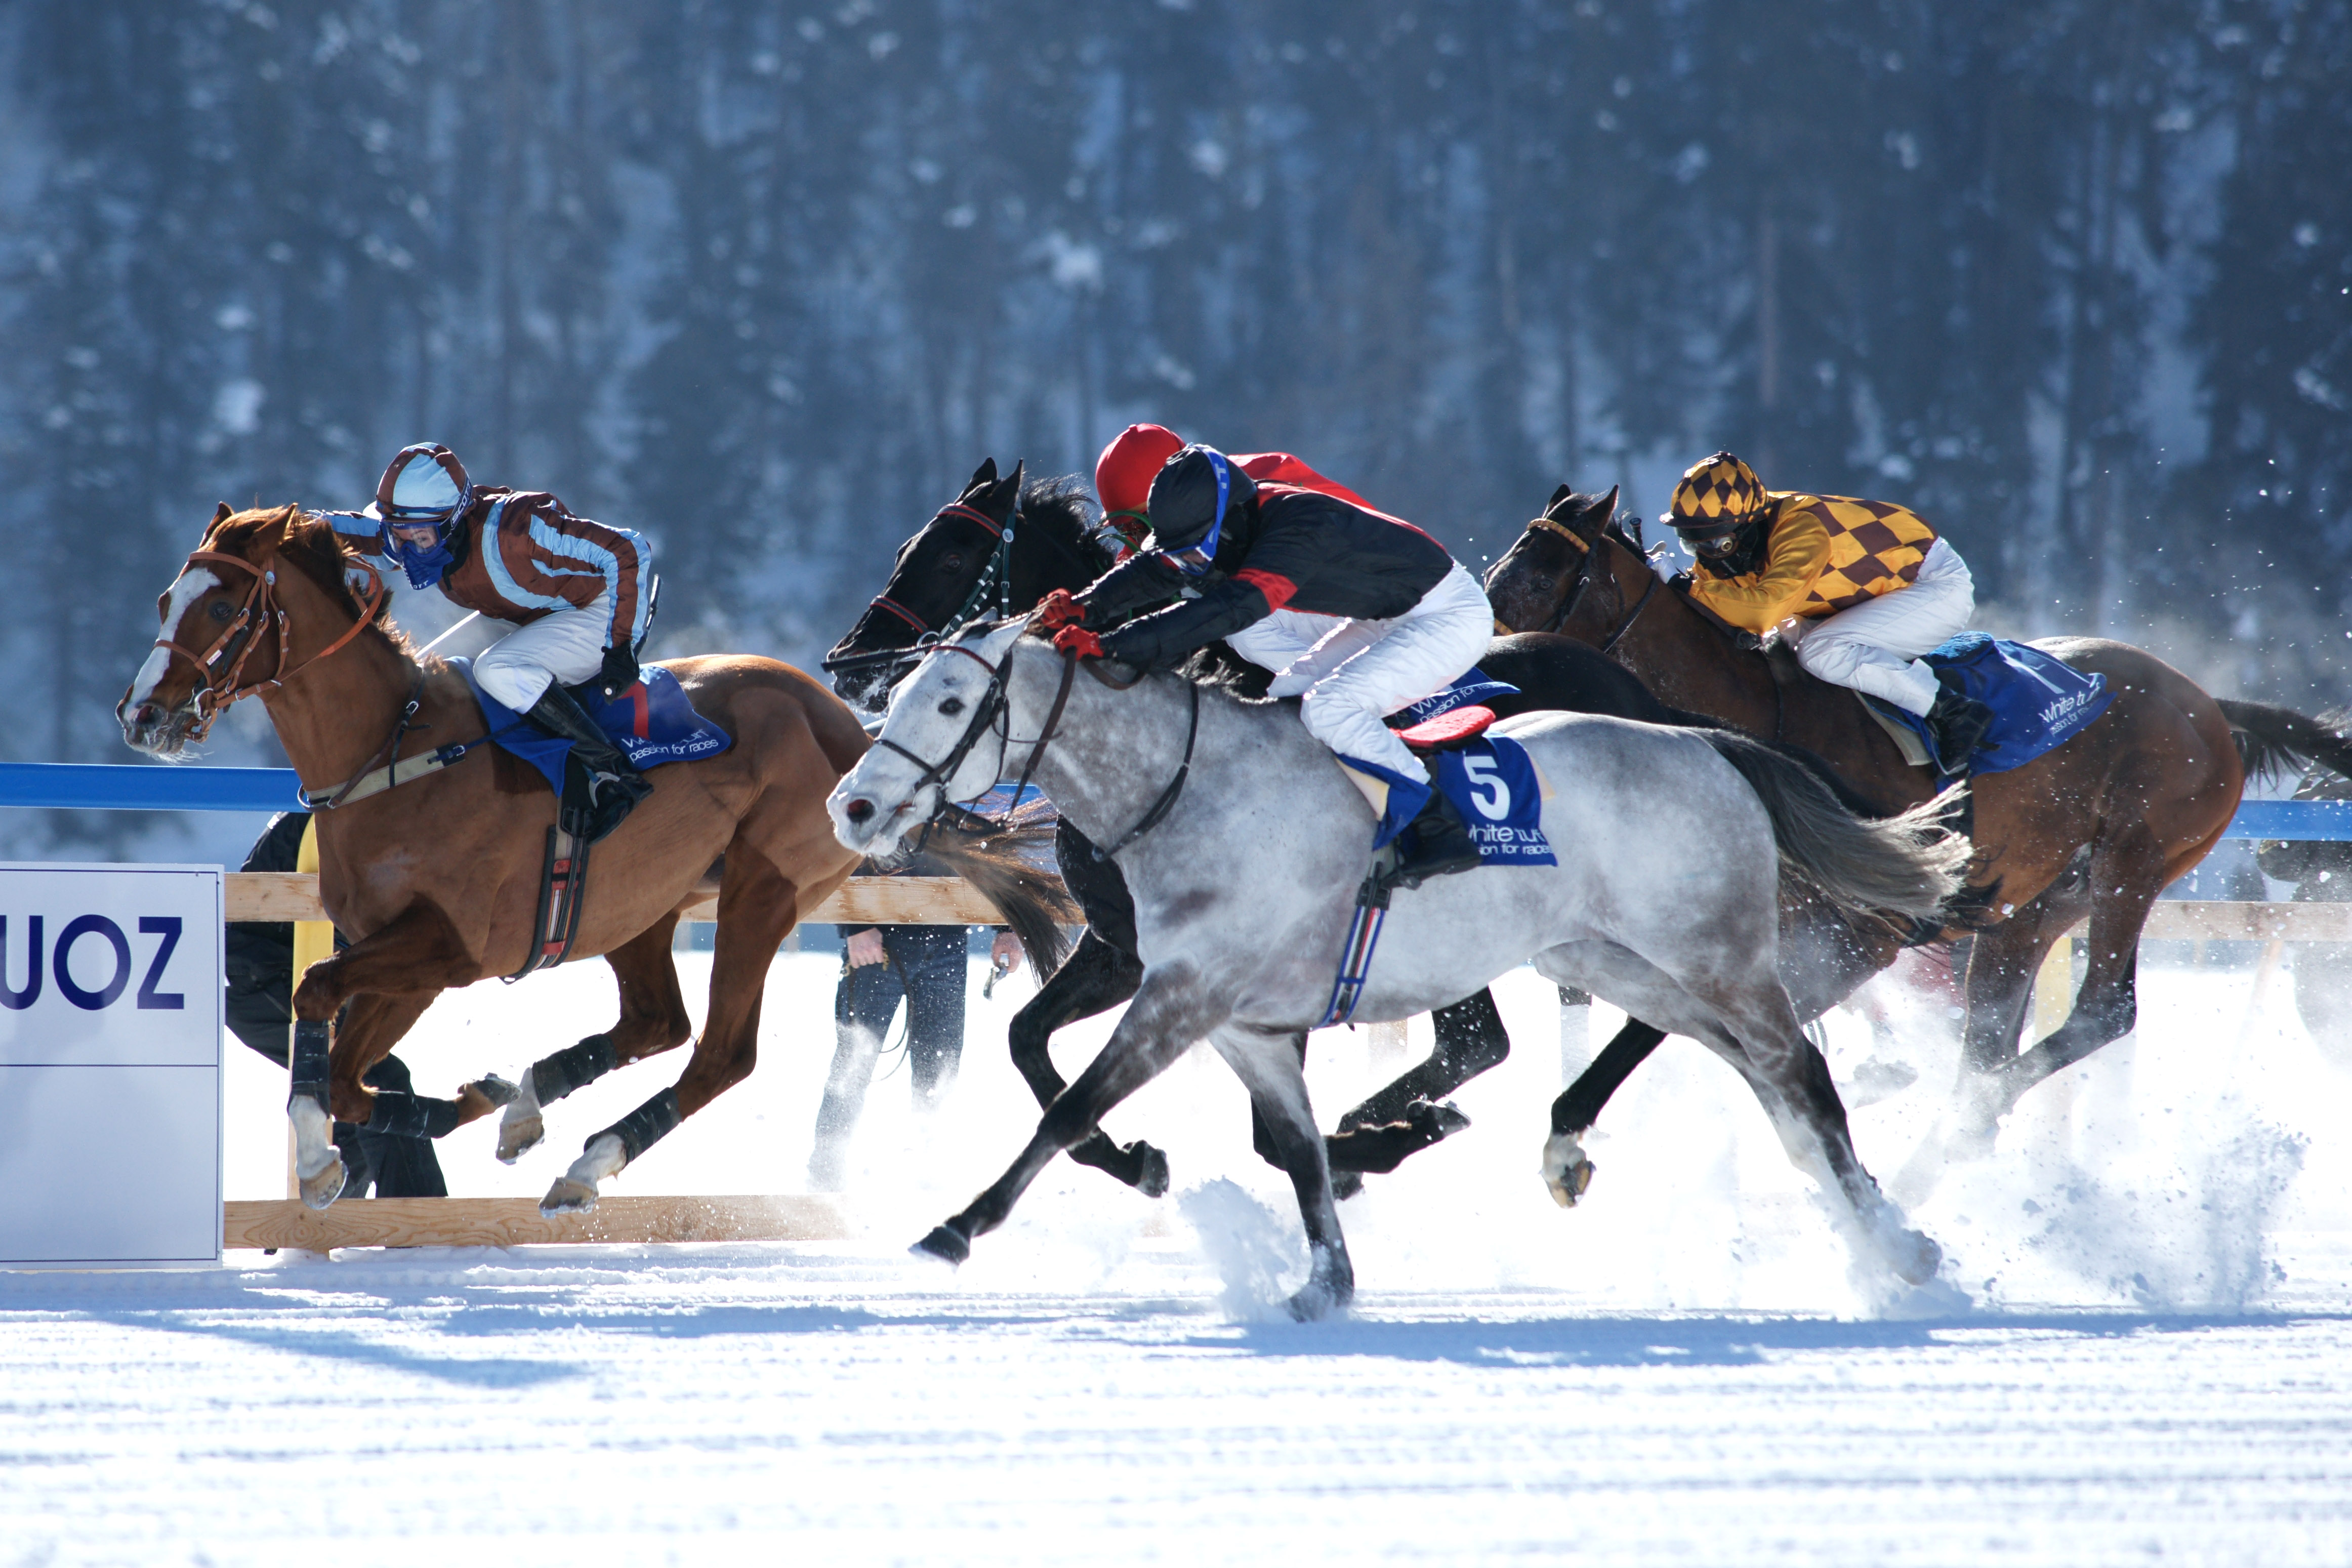 Horse Times Egypt: Equestrian Magazine :News :RISK FACTORS FOR INJURY IN SWISS HORSE RACING